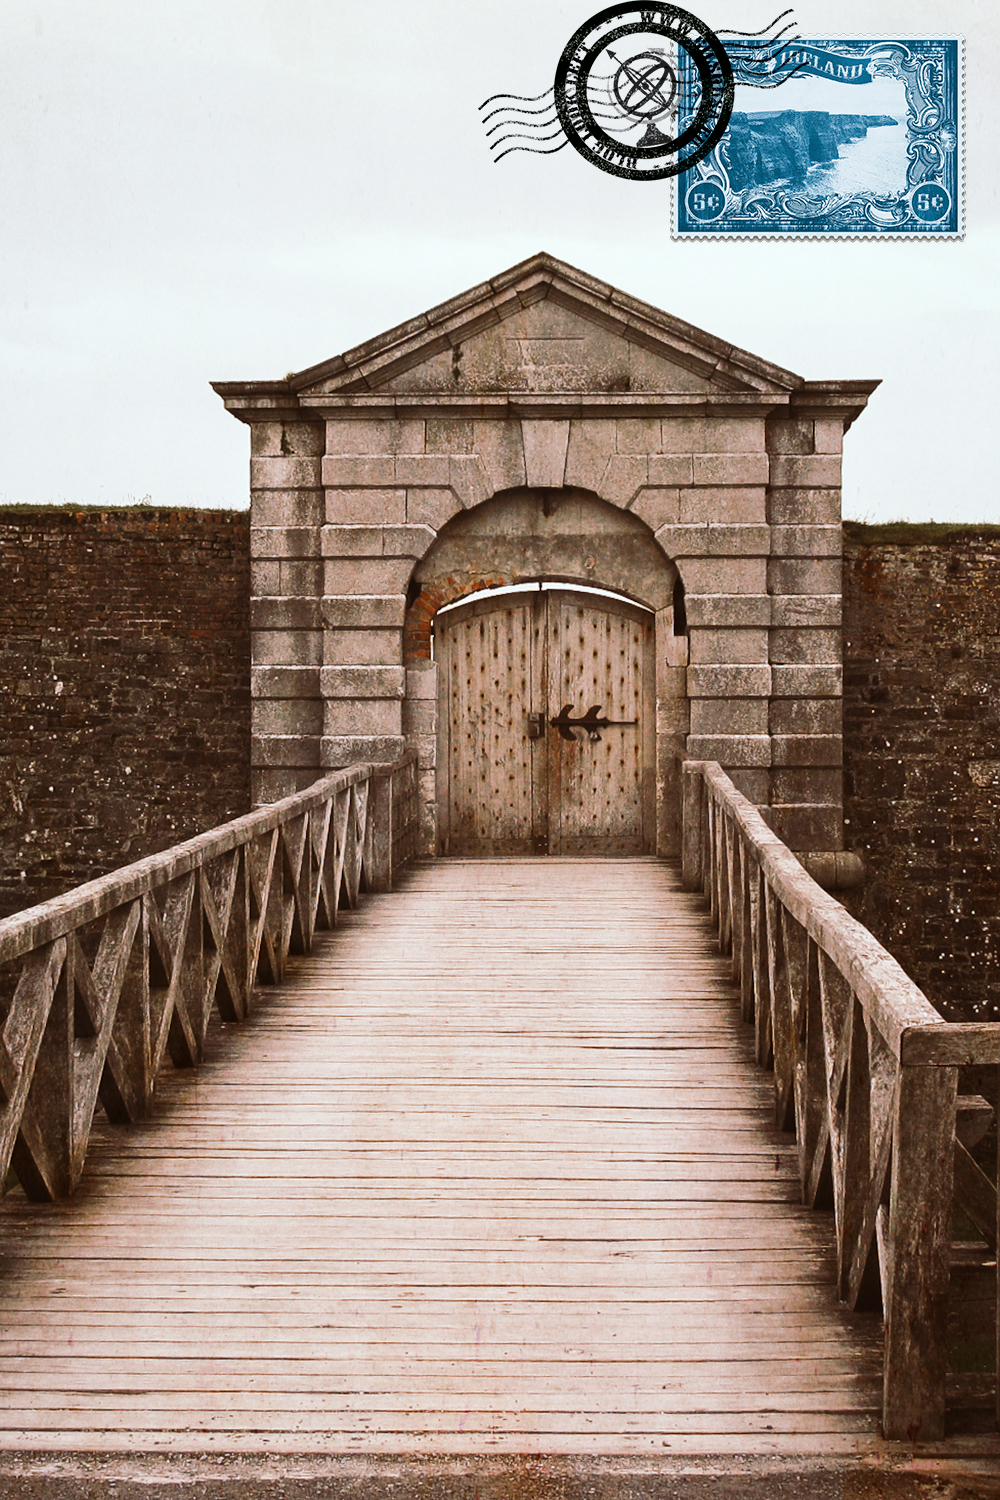 Entrance to Charles Fort